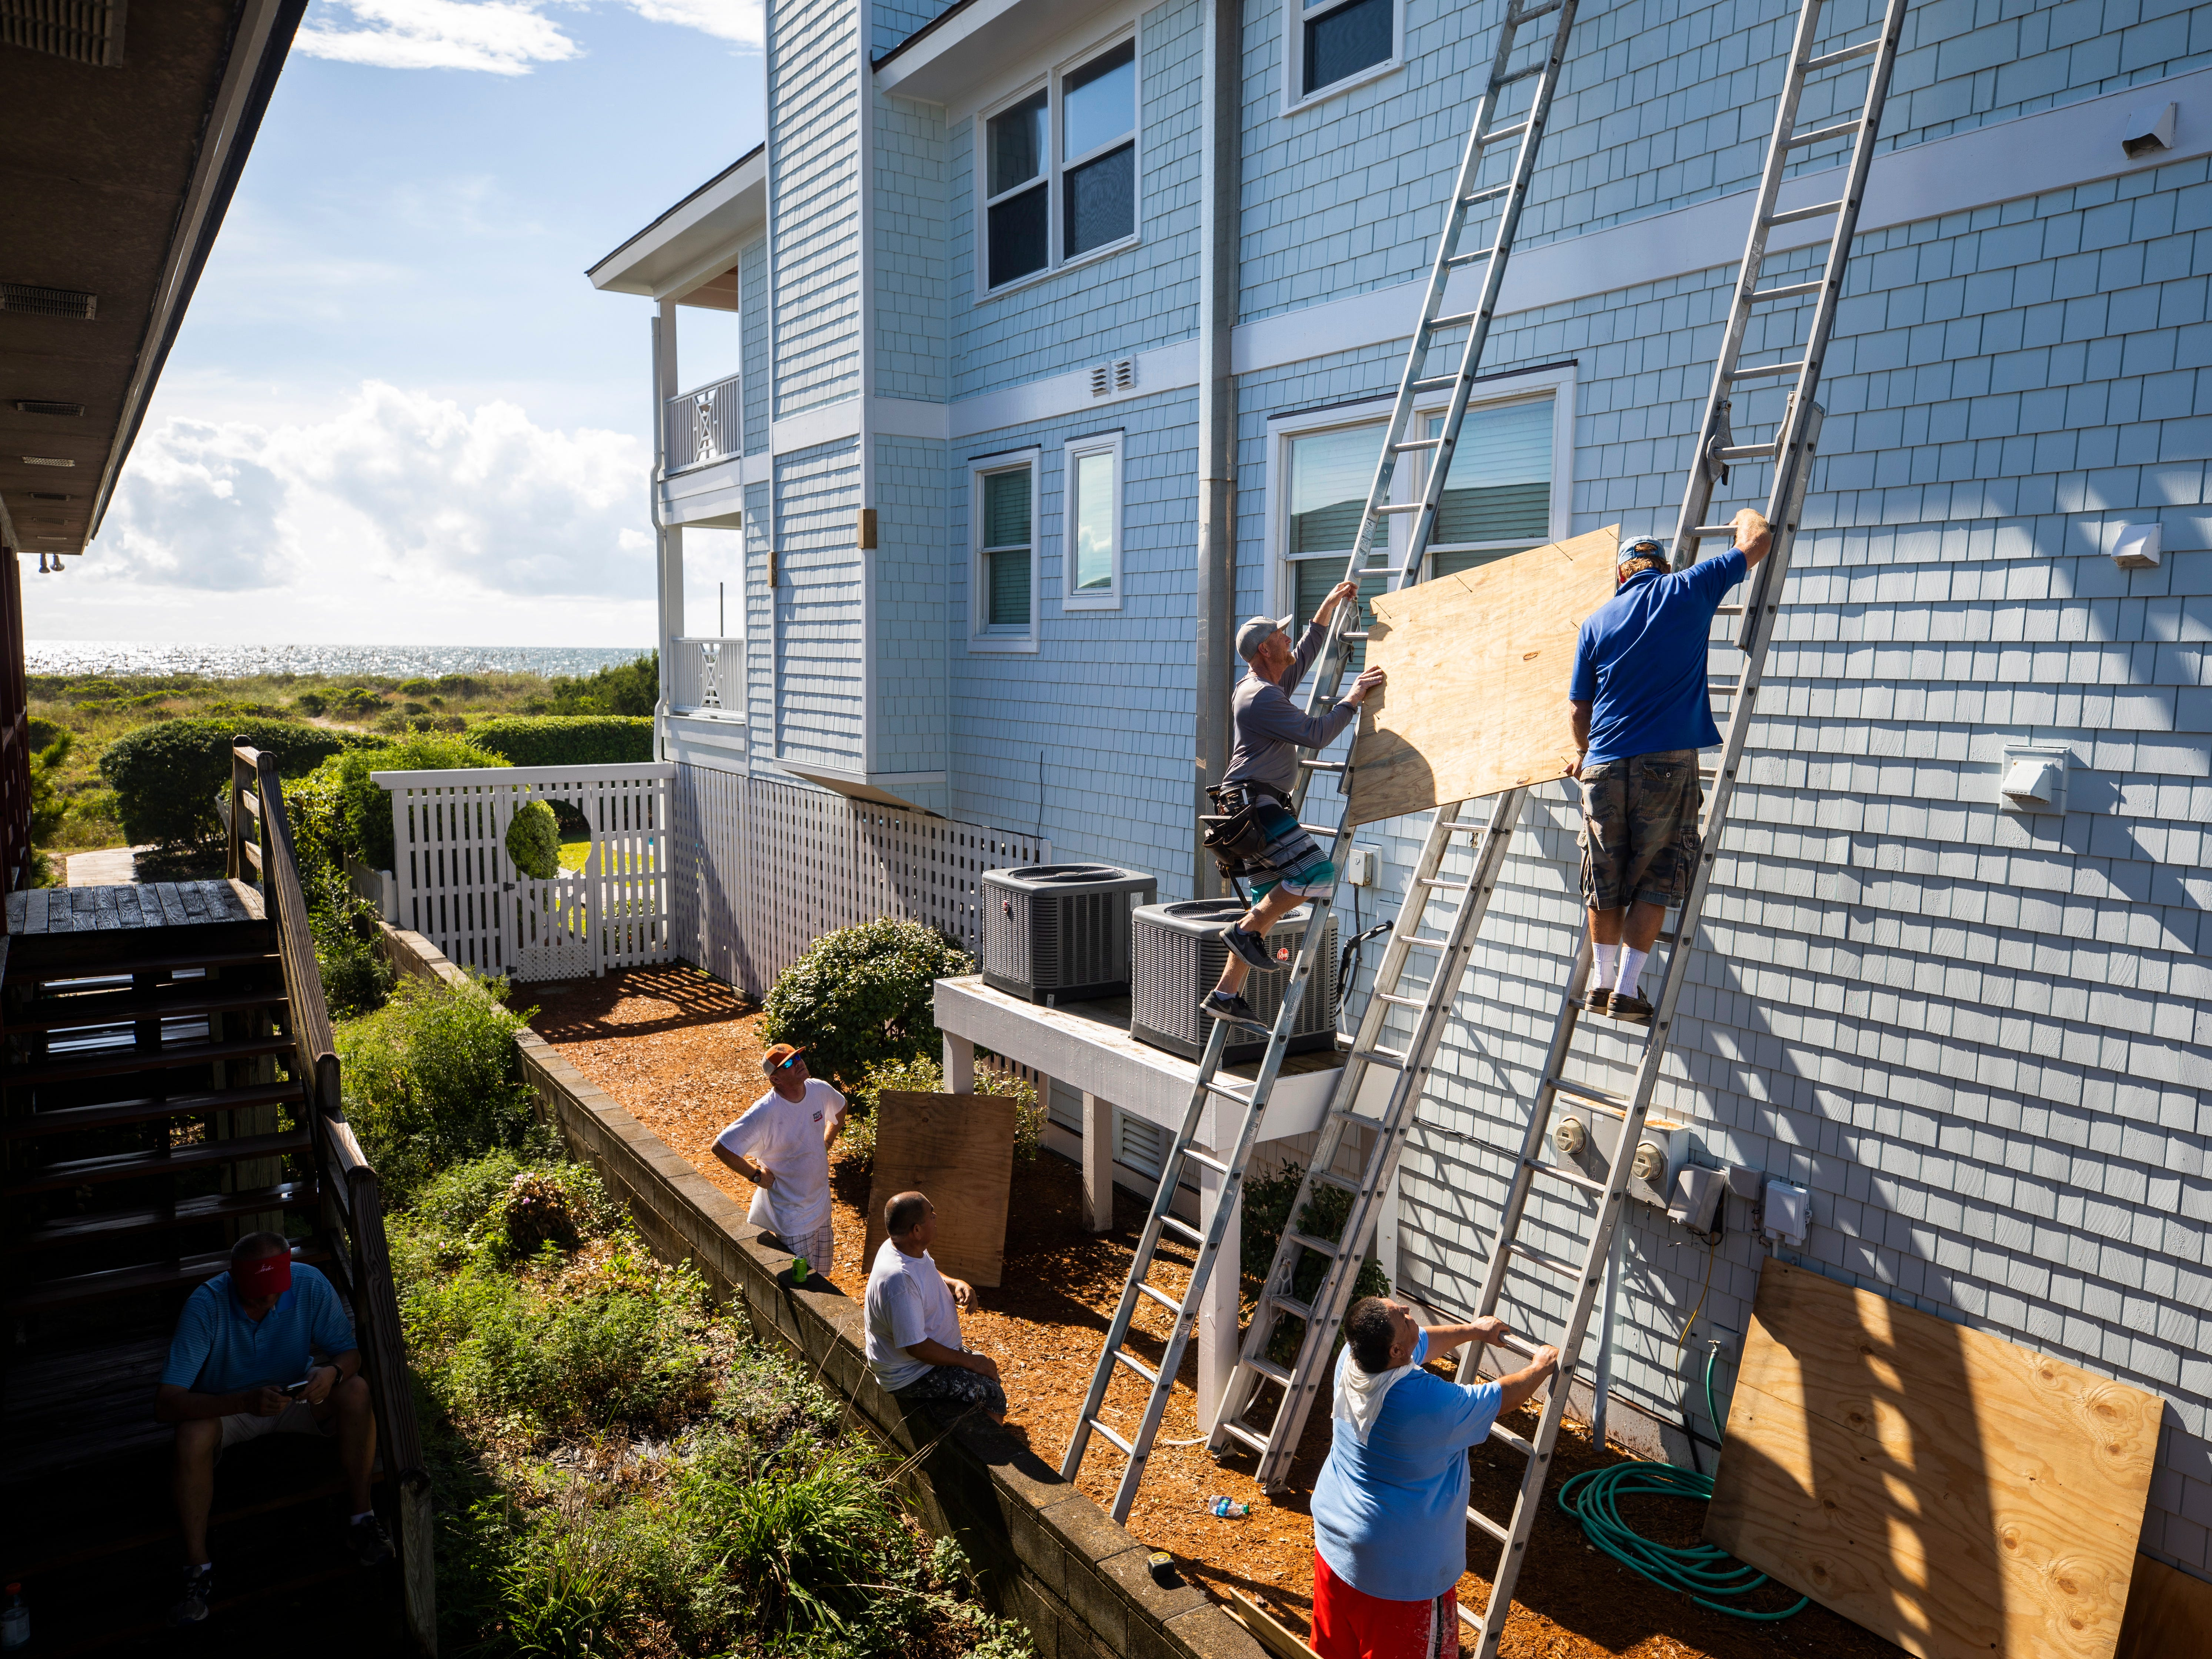 epa07014998 Bobby Vorn (top left) and Butch Beaudry (top right) prepare to attach wooden planks over the windows of an oceanfront home, less than two days before Hurricane Florence is expected to strike Wrightsville Beach, North Carolina, USA, 12 September 2018. Hurricane Florence is a category 4 storm on the Saffir-Simpson Hurricane Wind Scale, with winds toping 165 miles per hour. No category 4 hurricane has ever made landfall in North Carolina.  EPA-EFE/JIM LO SCALZO ORG XMIT: JJL30